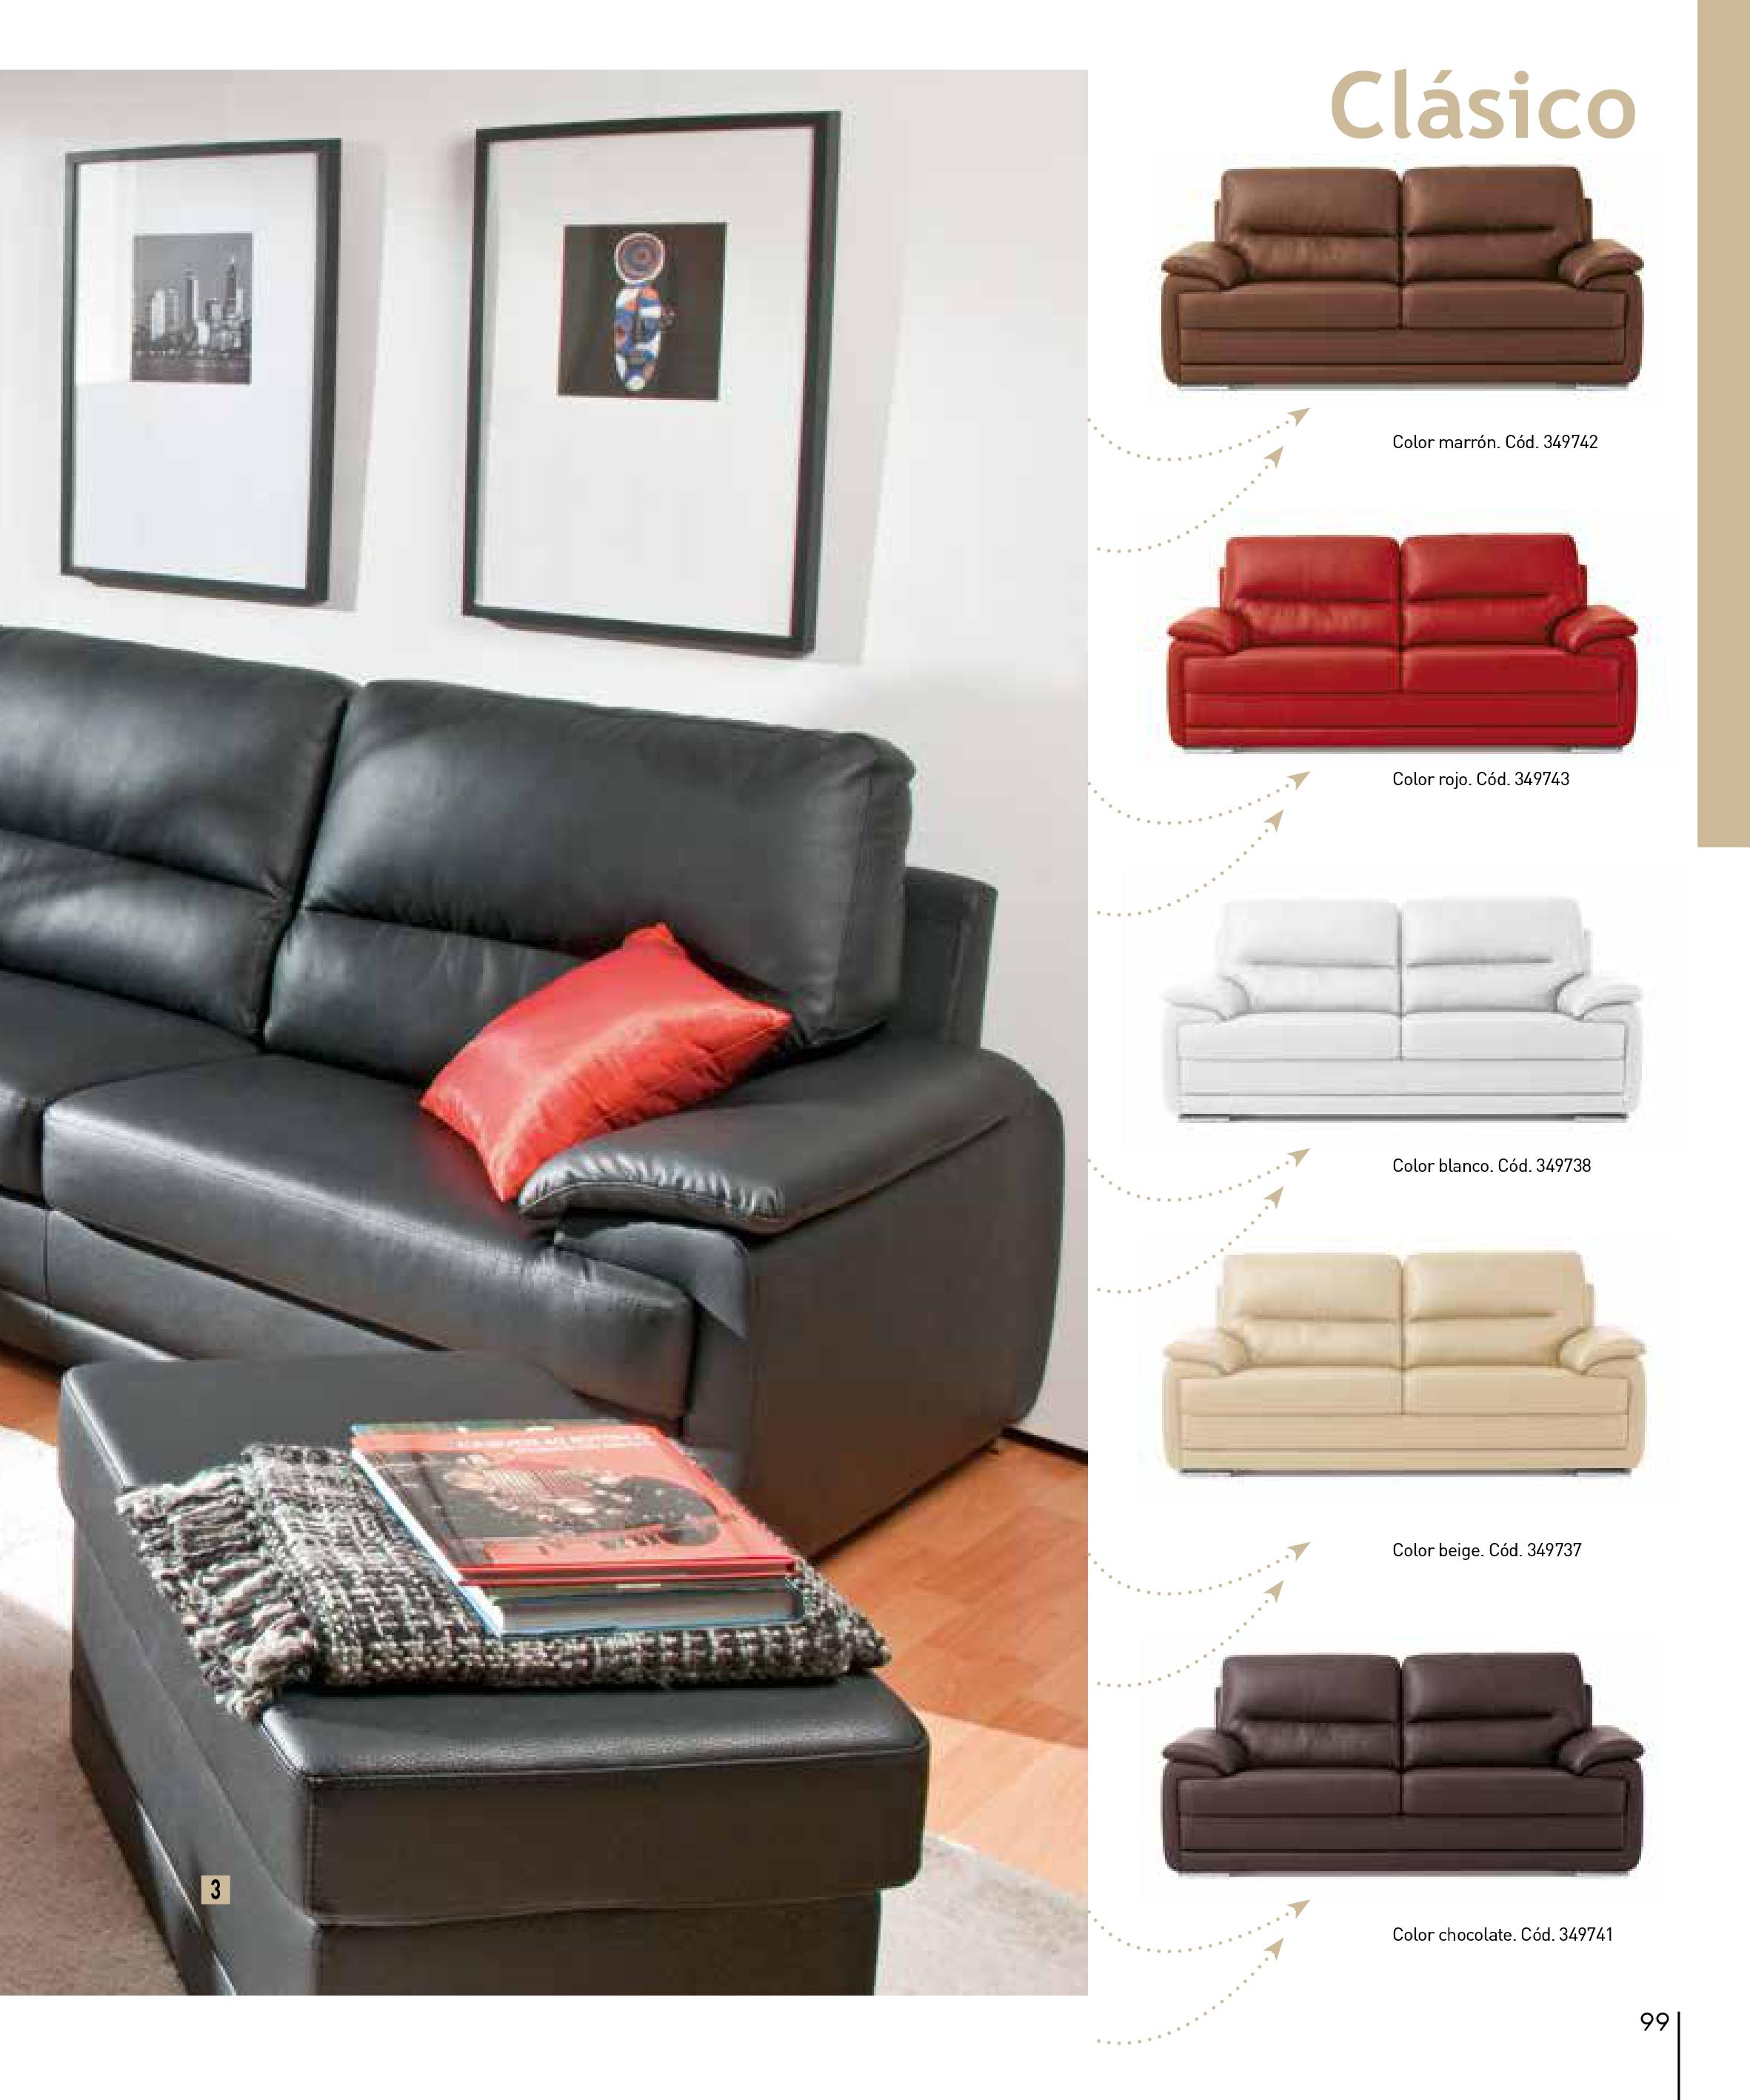 Sofas conforama 201599 for Sofas conforama catalogo